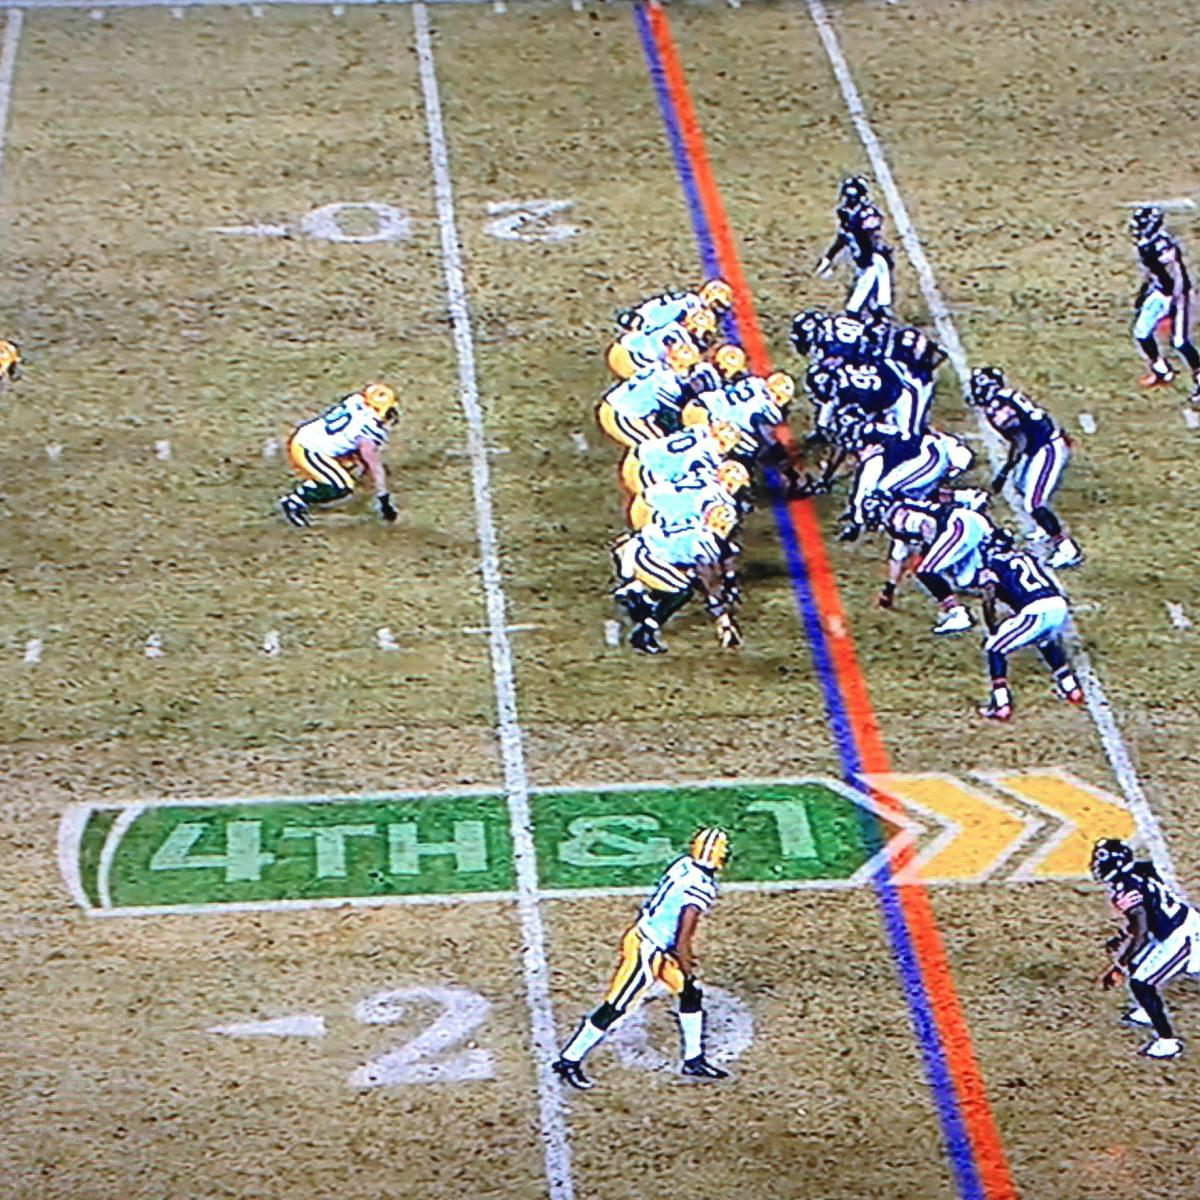 Referee Error Aids Green Bay Packers in Win over Chicago Bears ... 4e9b4604b